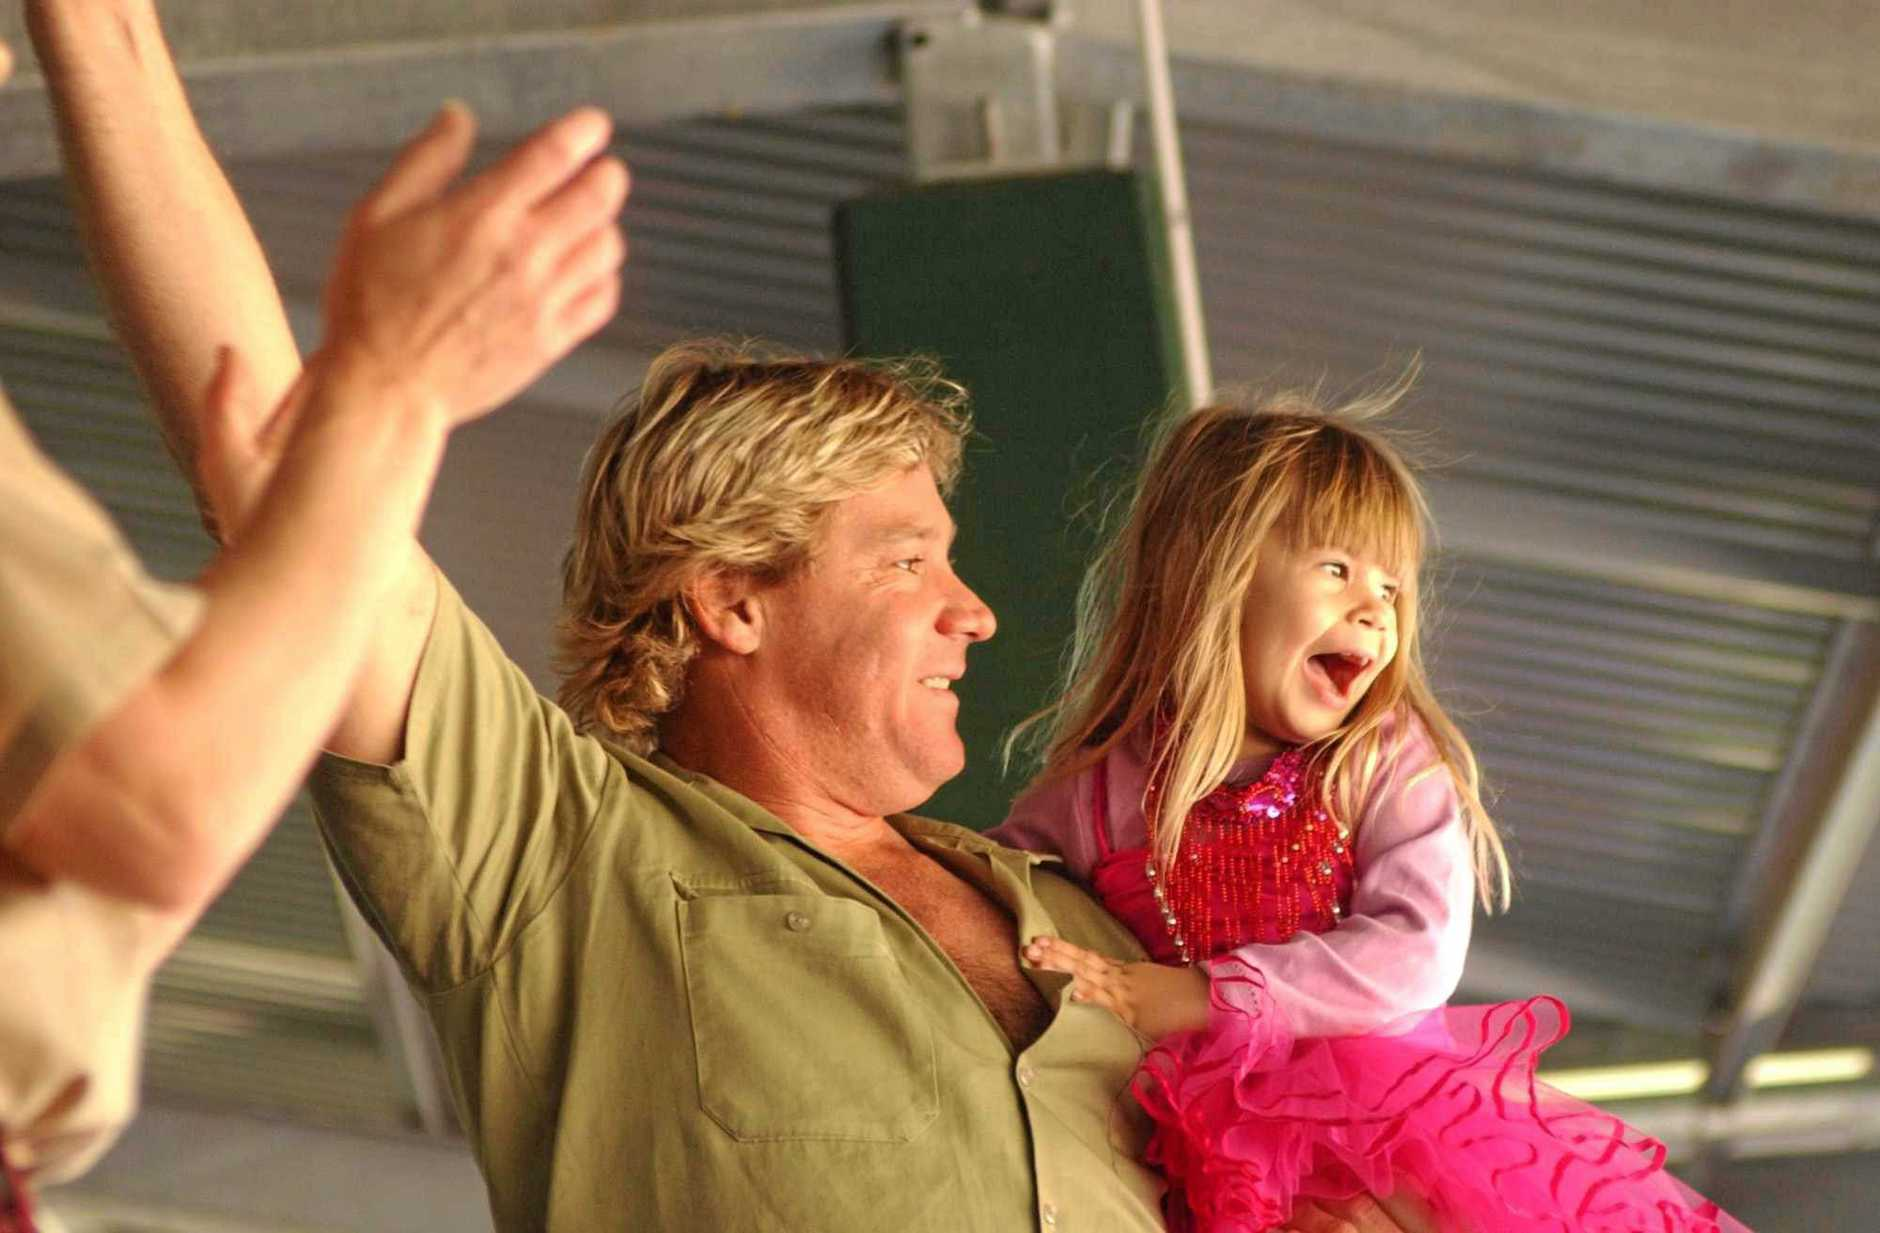 25/07/02      111221Steve Irwin and his daughter Bindi celebrate  her 4th  birthday celebrations at Australia Zoo.